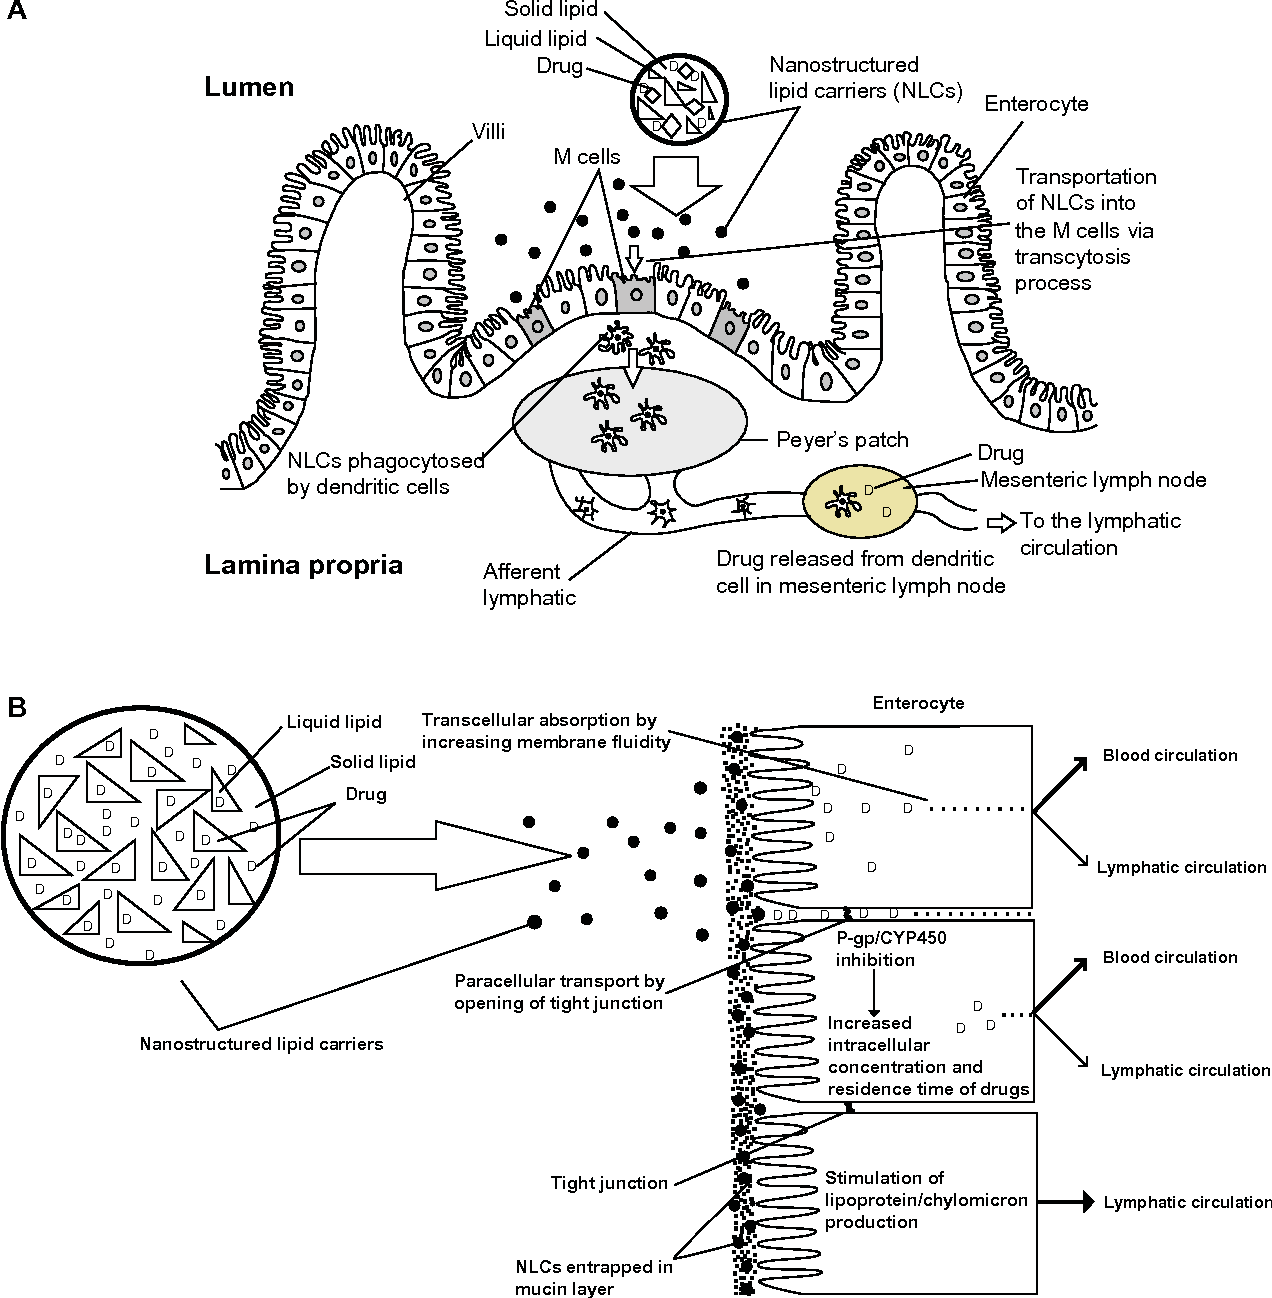 Figure 1 From Advanced Drug Delivery To The Lymphatic